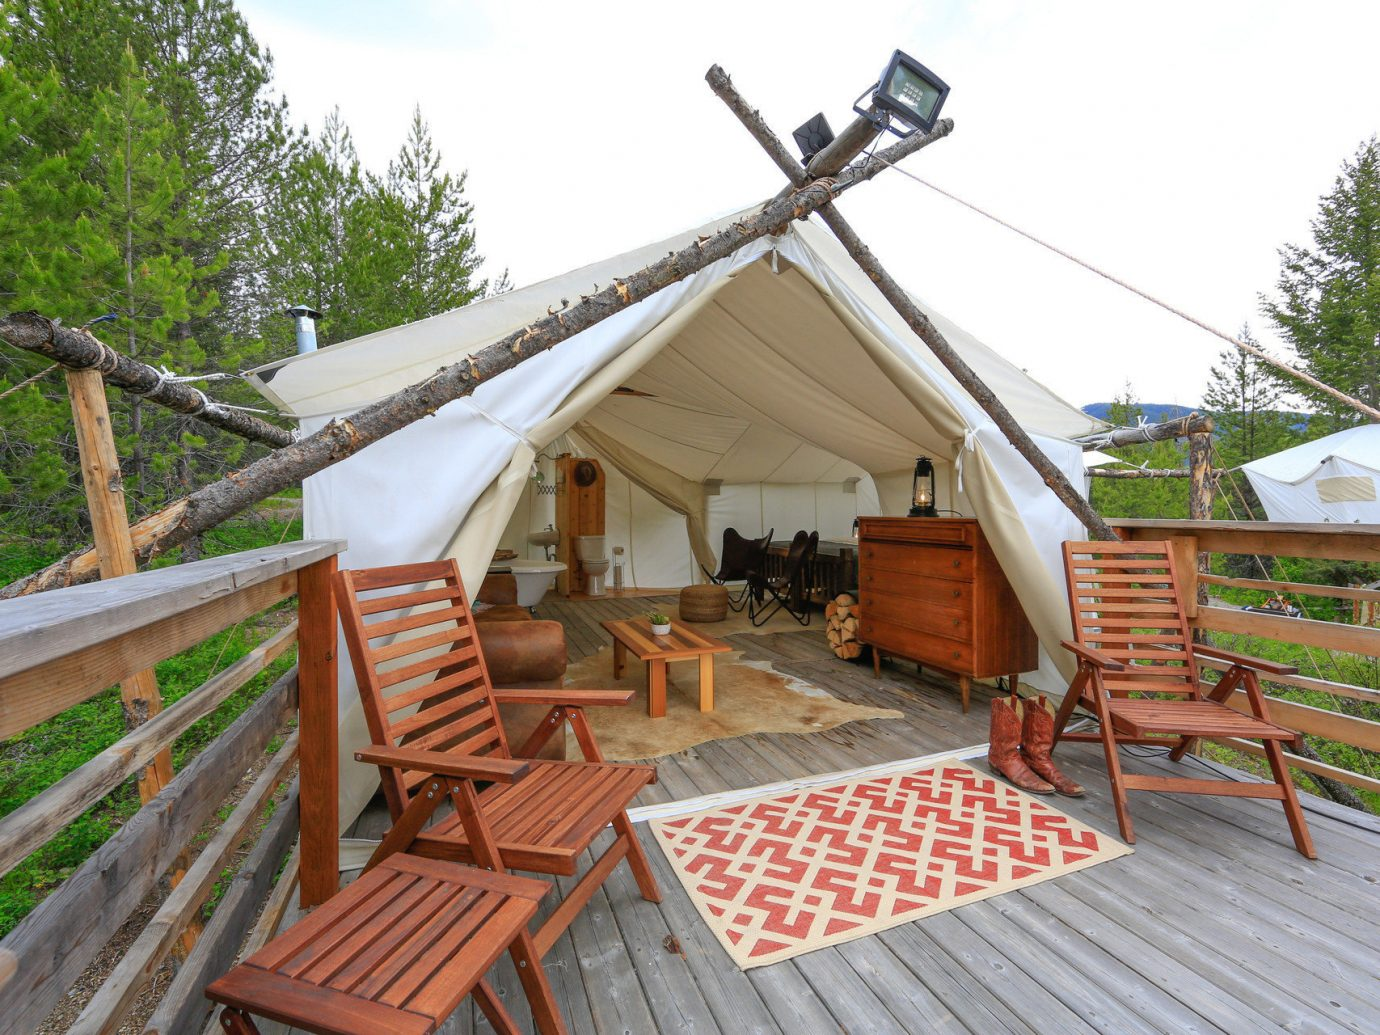 Family Travel National Parks Trip Ideas sky outdoor tree wooden chair property cottage hut Resort outdoor structure log cabin Villa real estate roof wood furniture